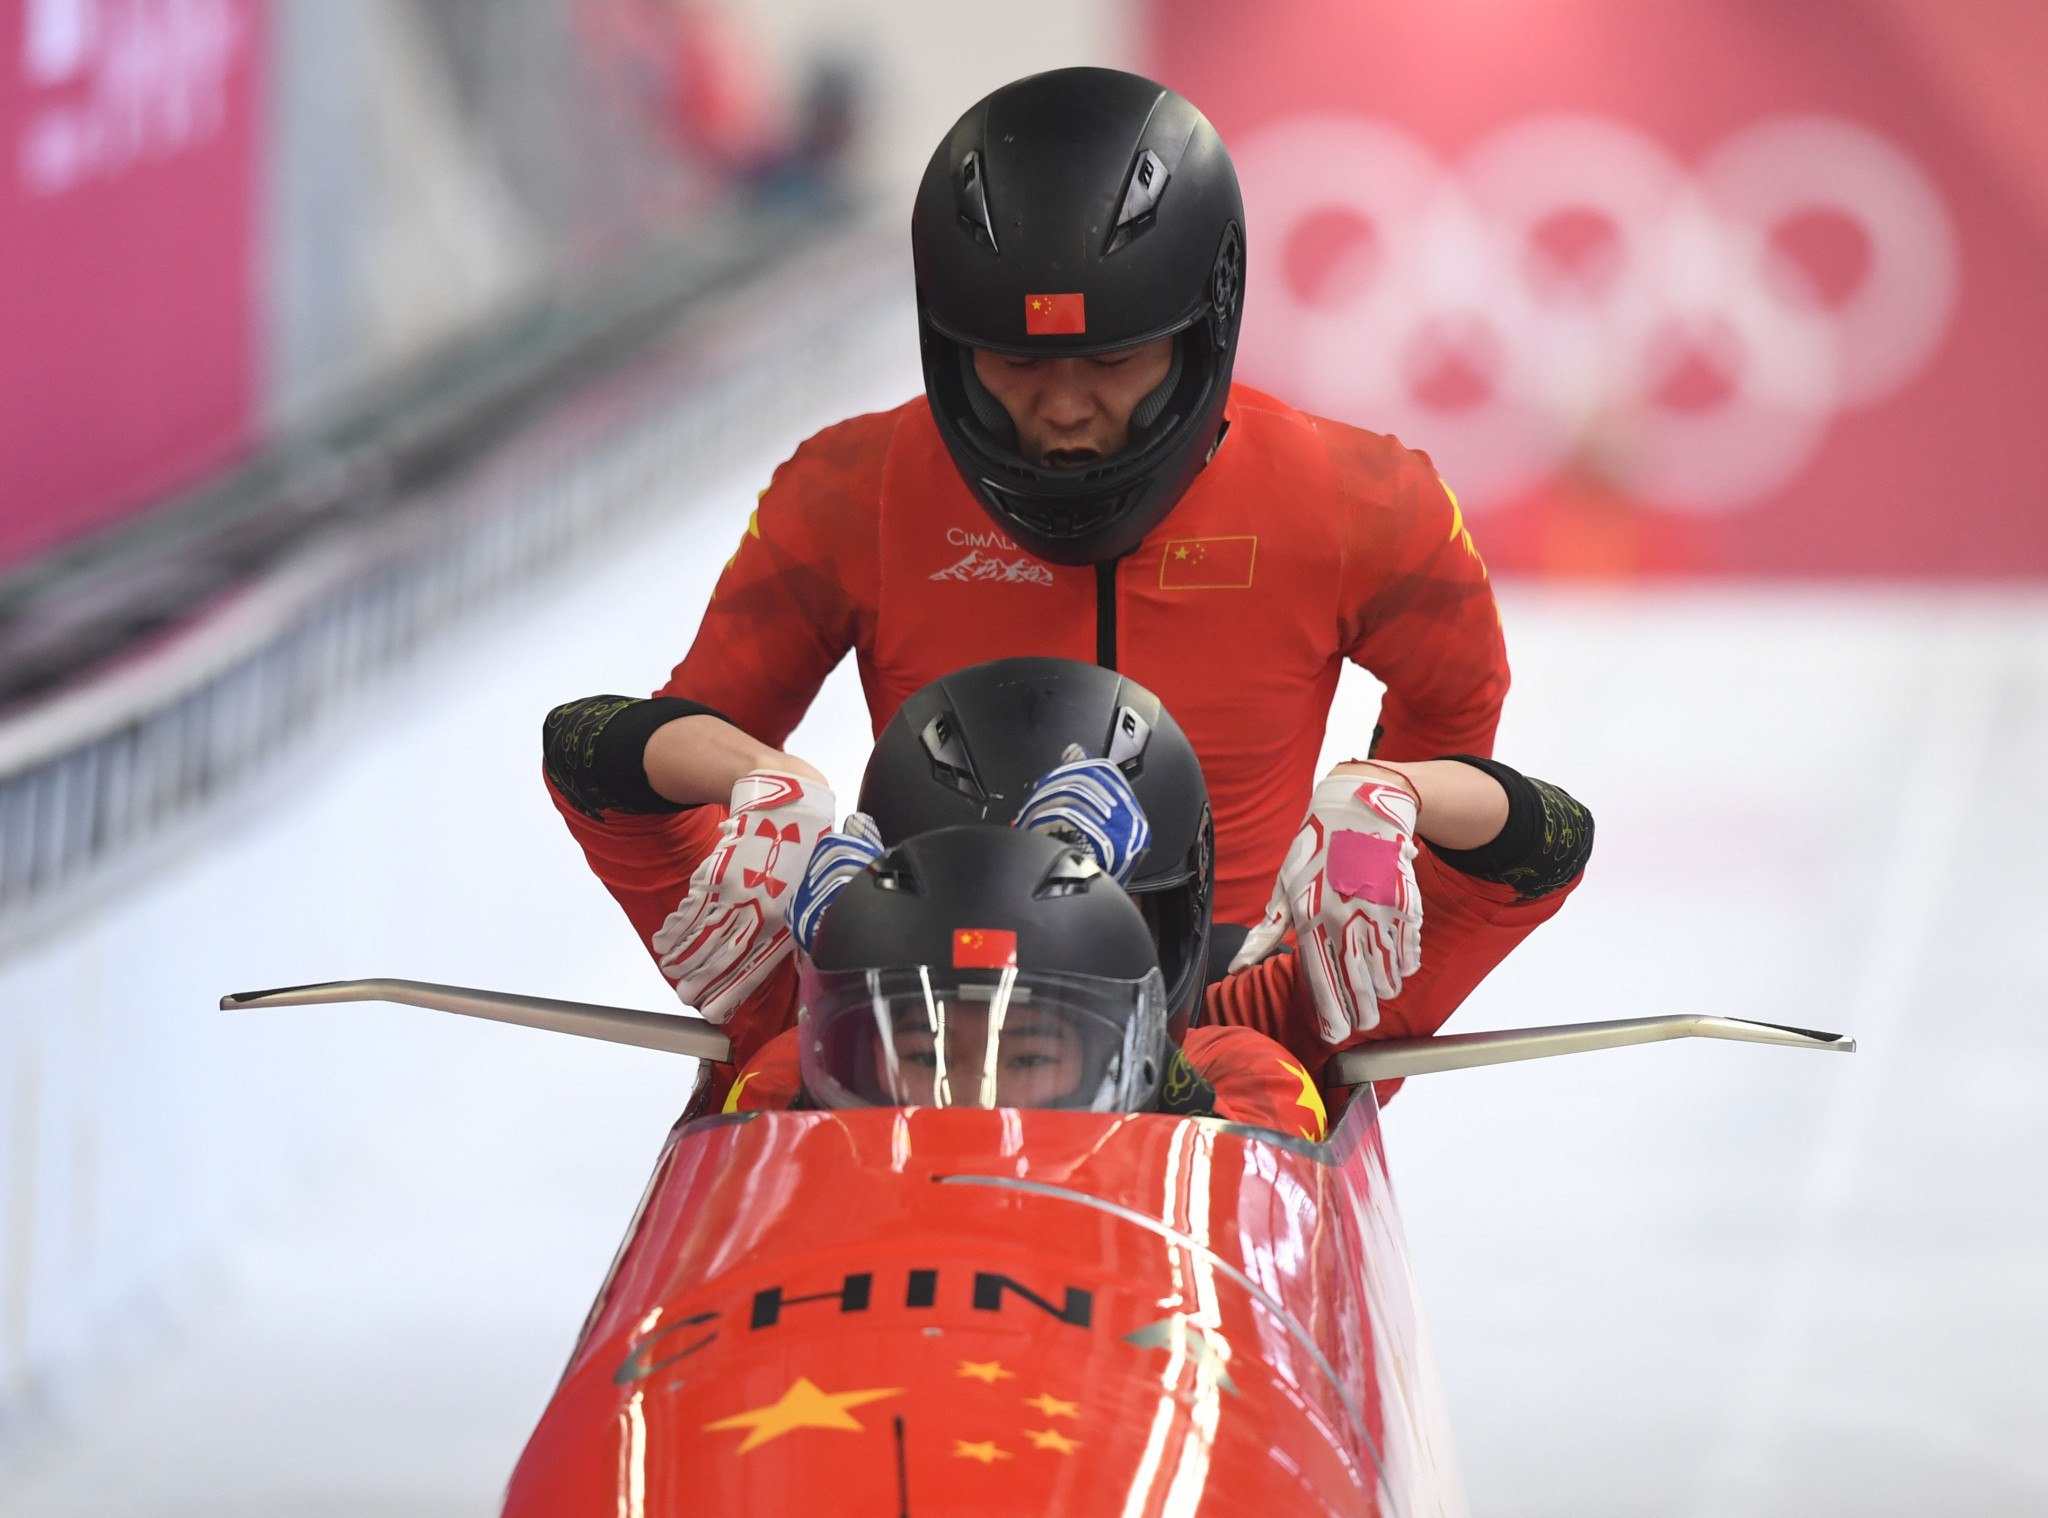 Bobsleigh is a sport in which China wants to improve before their home Olympics ©Getty Images